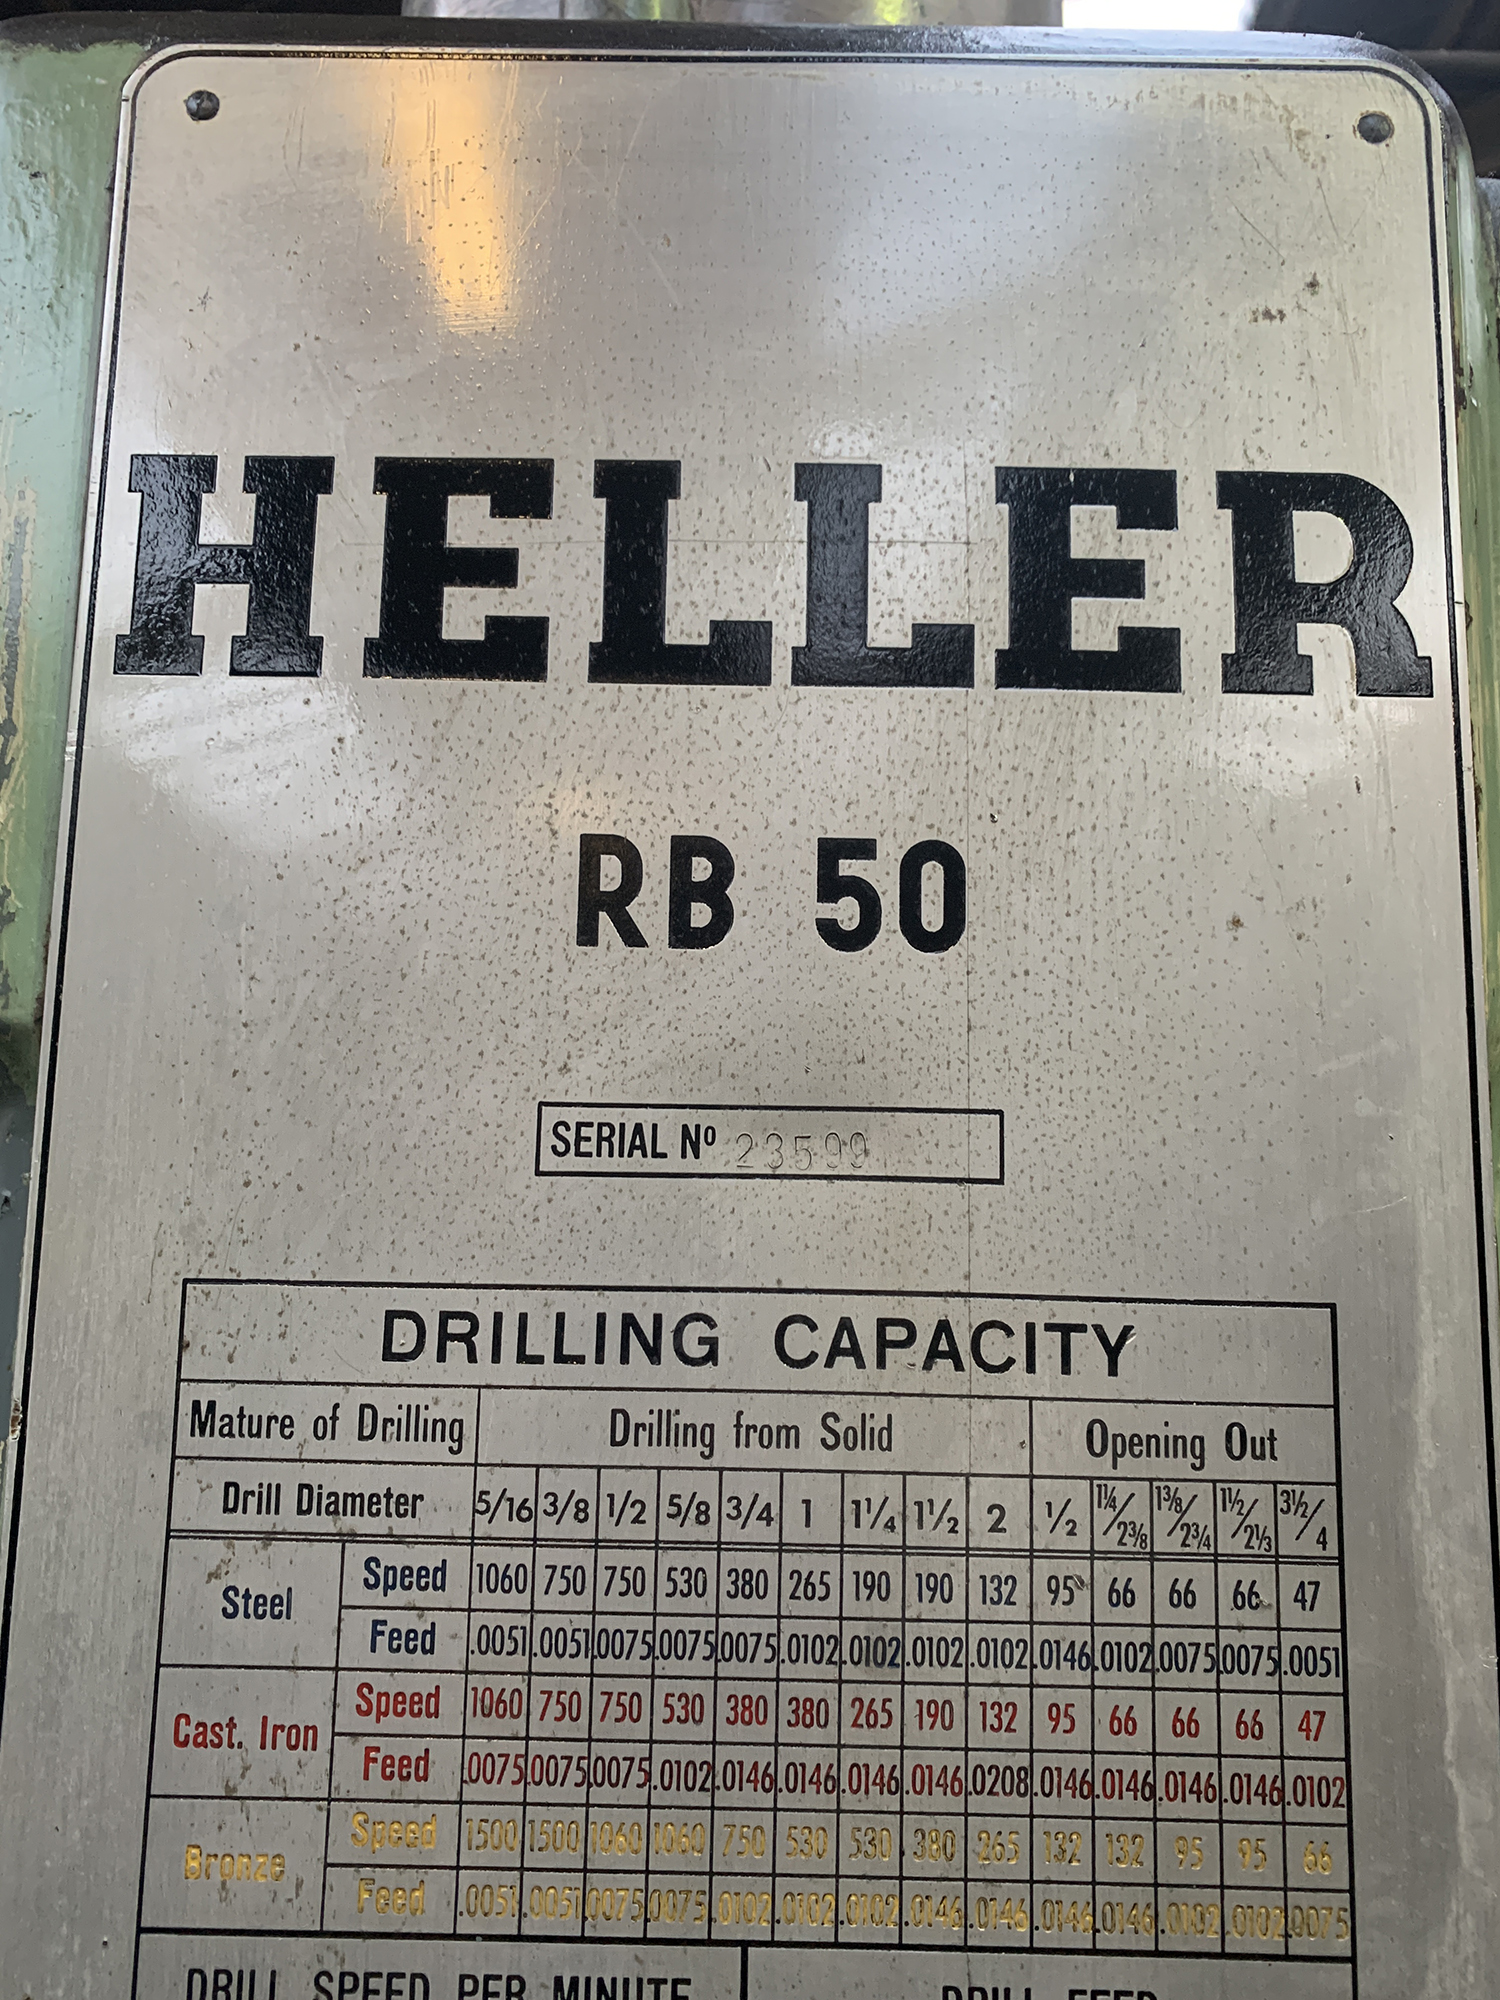 Heller Radial Arm Drill. 48'' Radius of Arm. Box Table Size 1000mm x 1000mm x 550mm. - Image 3 of 4